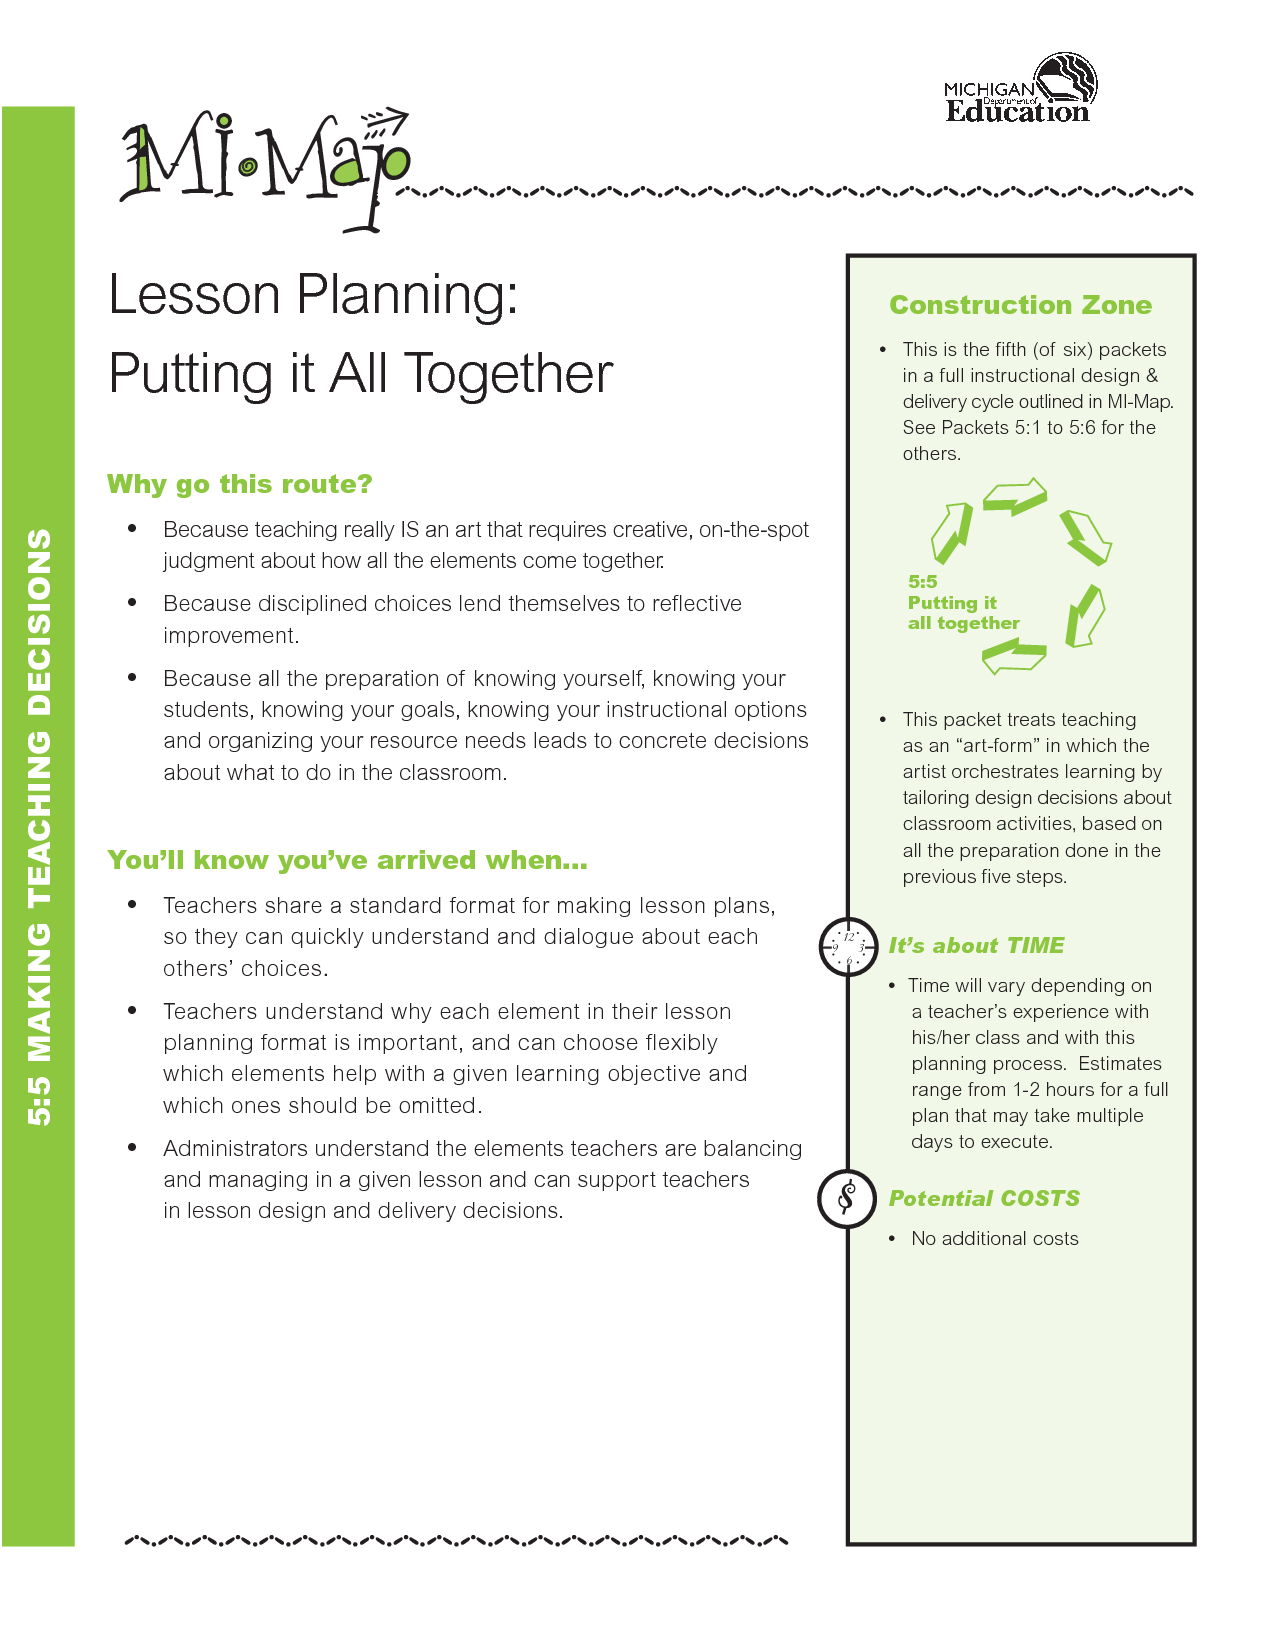 customized lesson plans teachnet com